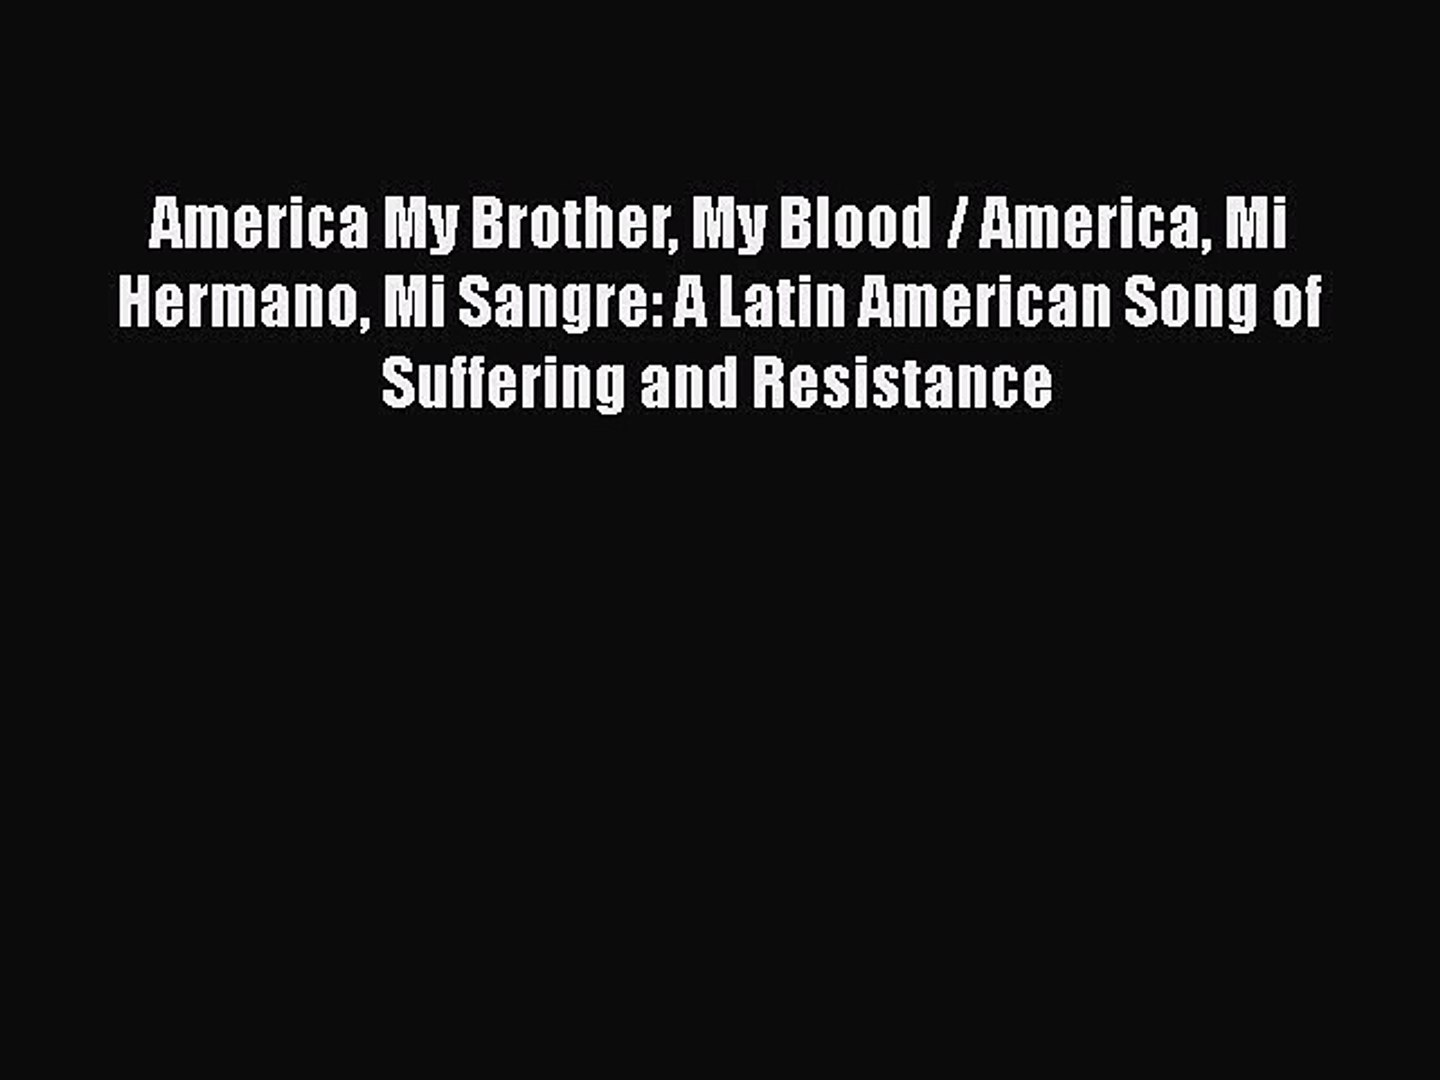 [Read Book] America My Brother My Blood / America Mi Hermano Mi Sangre: A Latin American Song